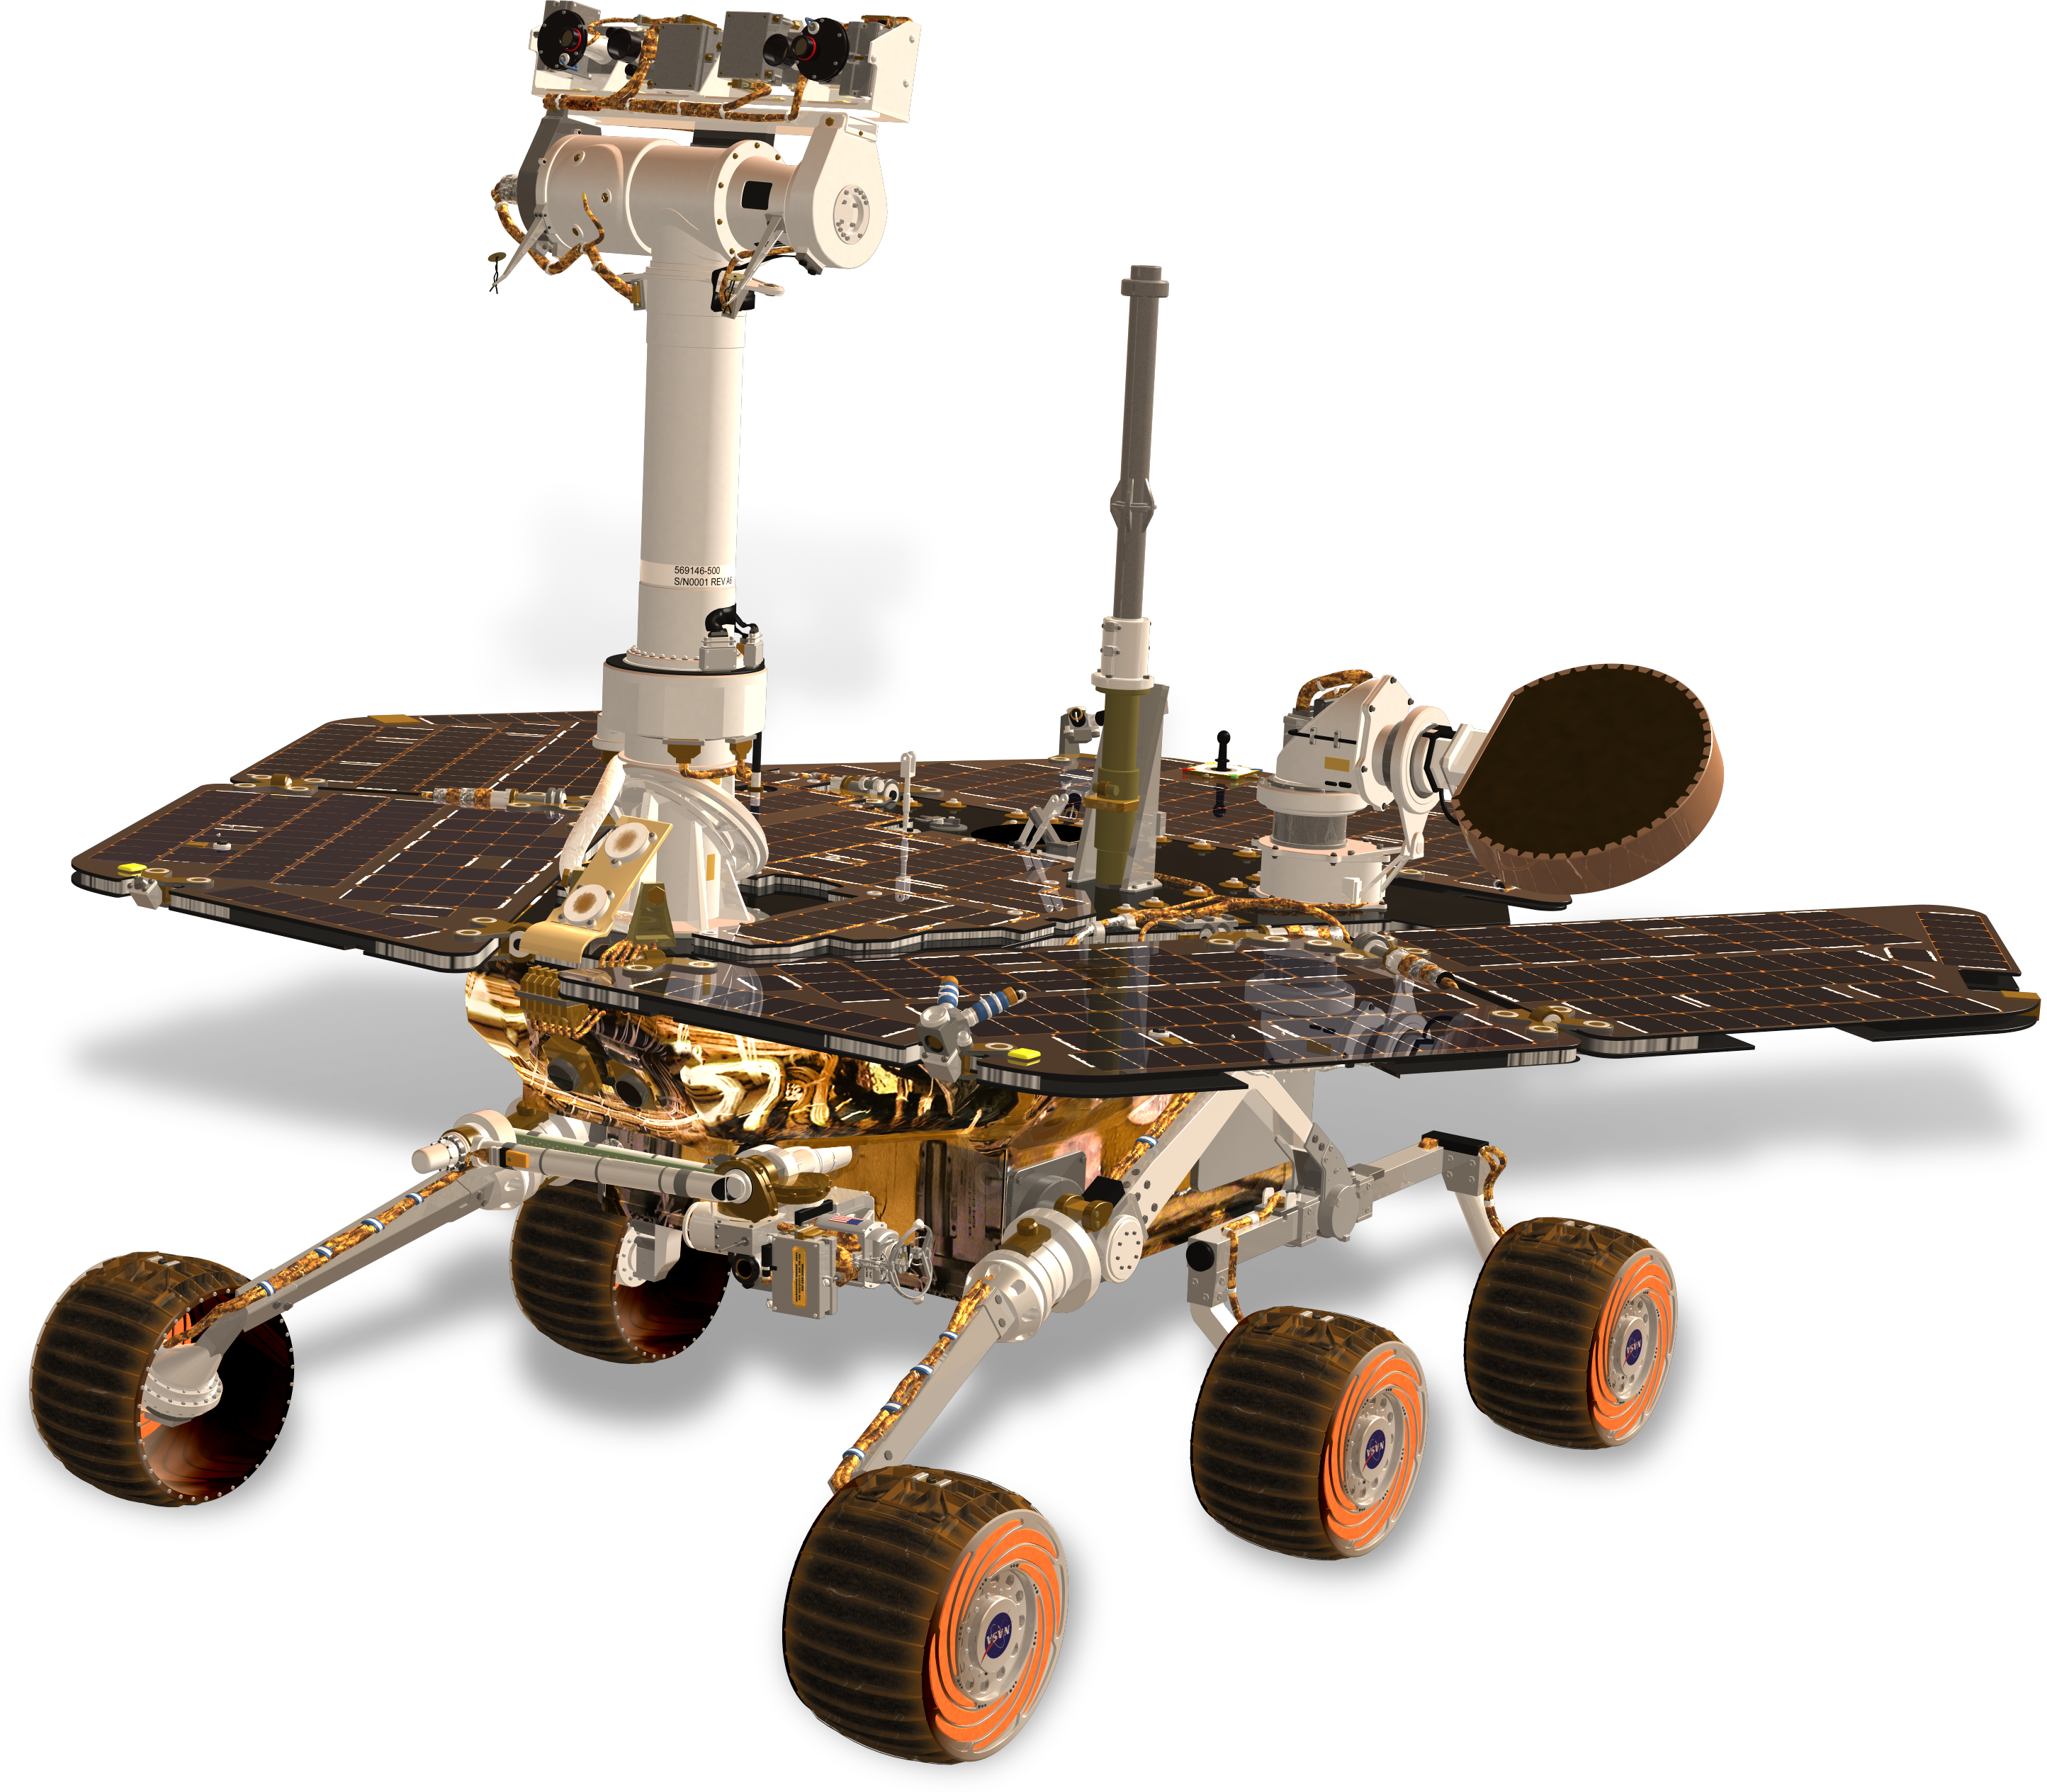 new mars exploration rover - photo #24